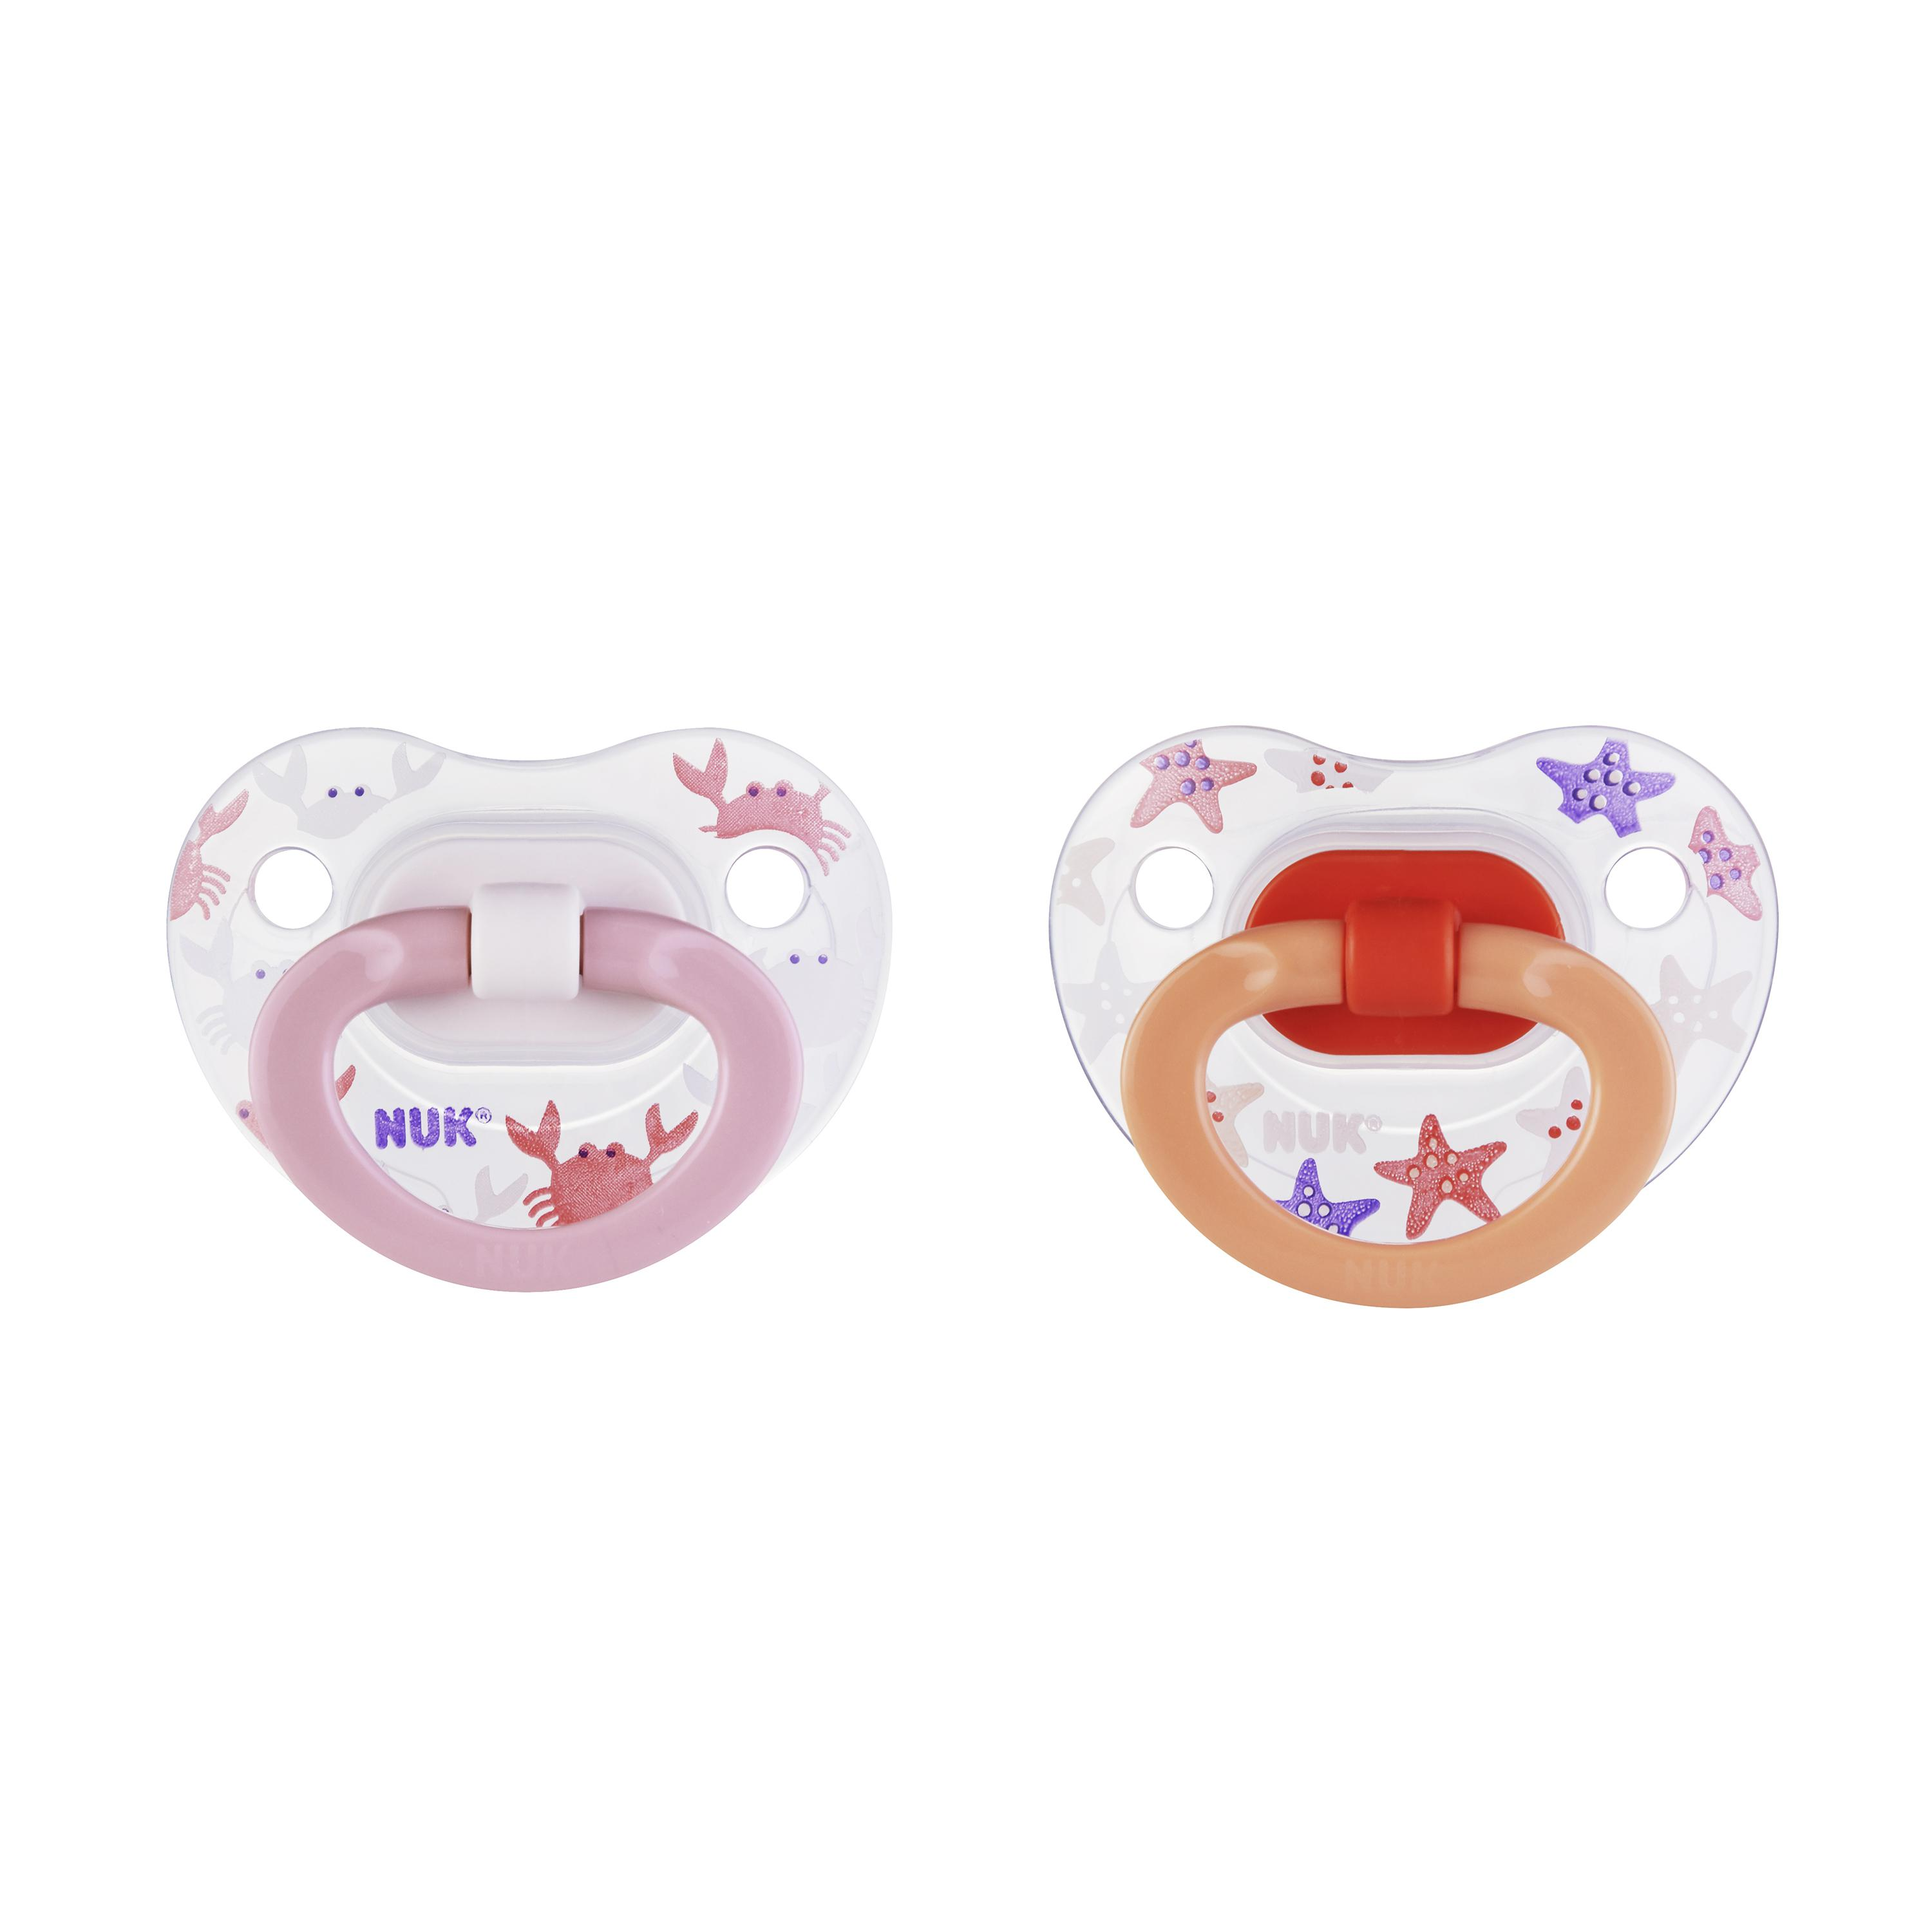 NUK® Orthodontic Pacifiers, 18-36 Months, 2-Pack Product Image 6 of 6